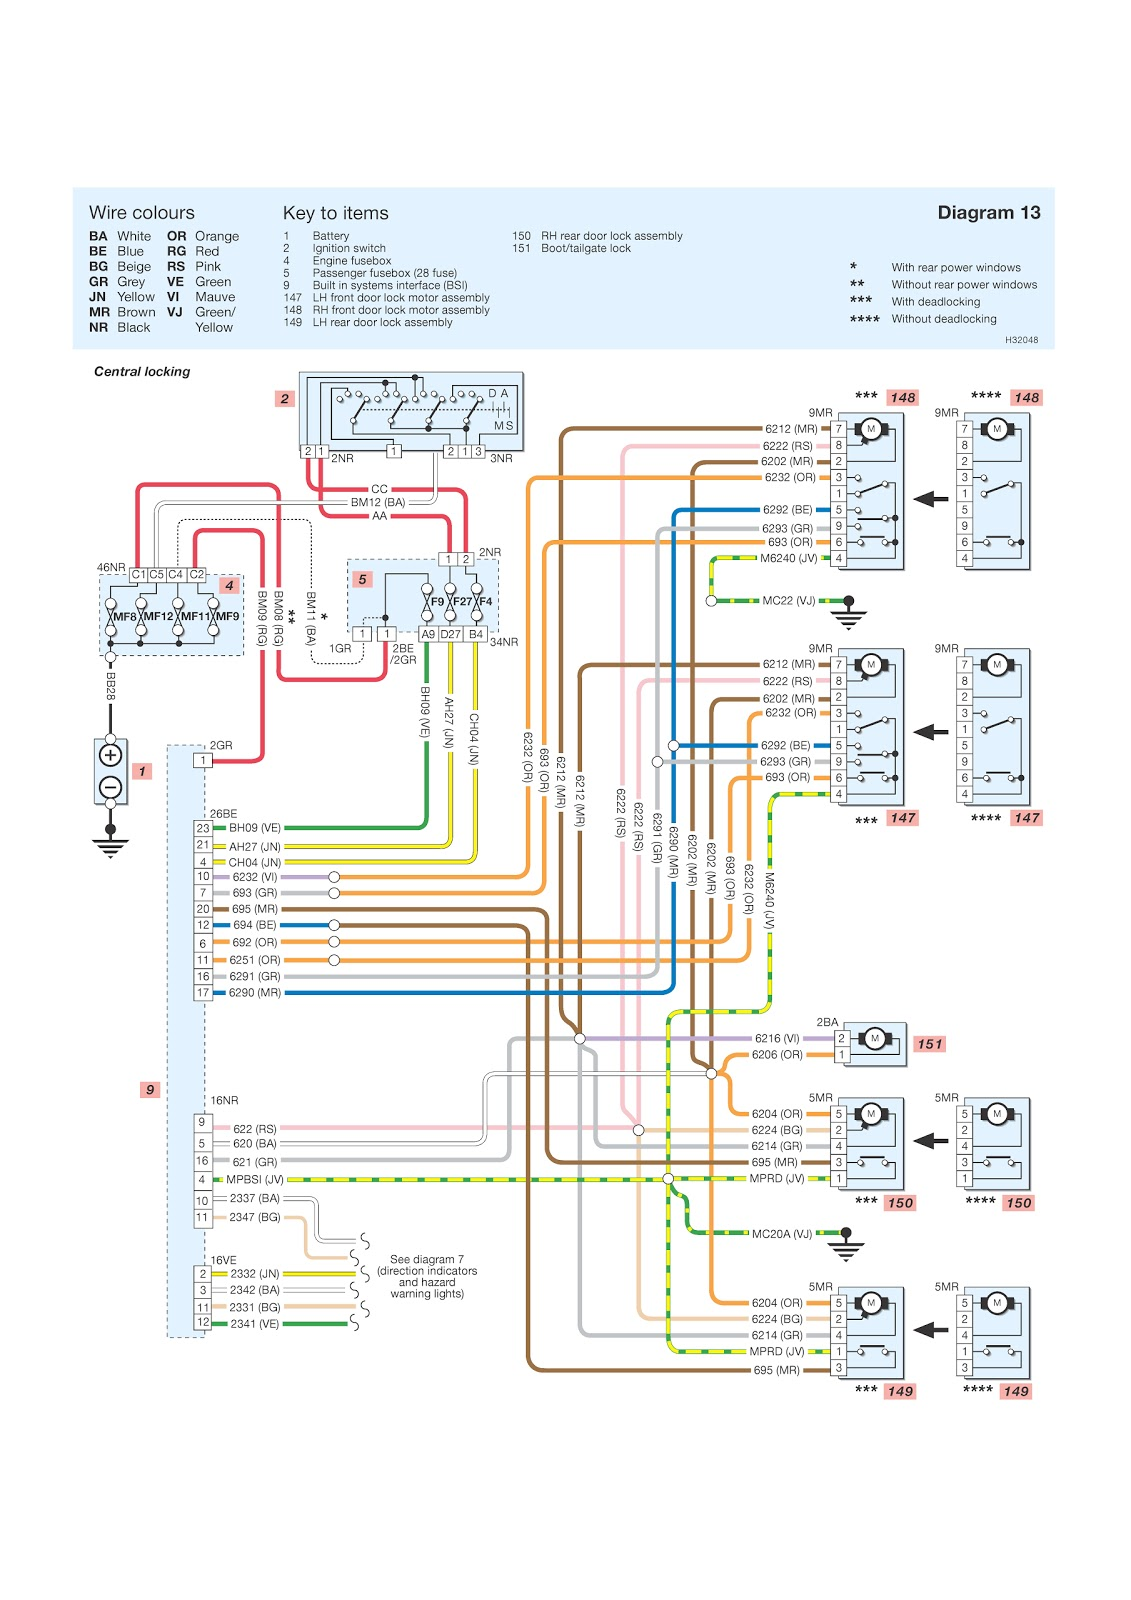 Peugeot 306 Door Wiring Diagram : Peugeot wiring diagrams central locking schematic